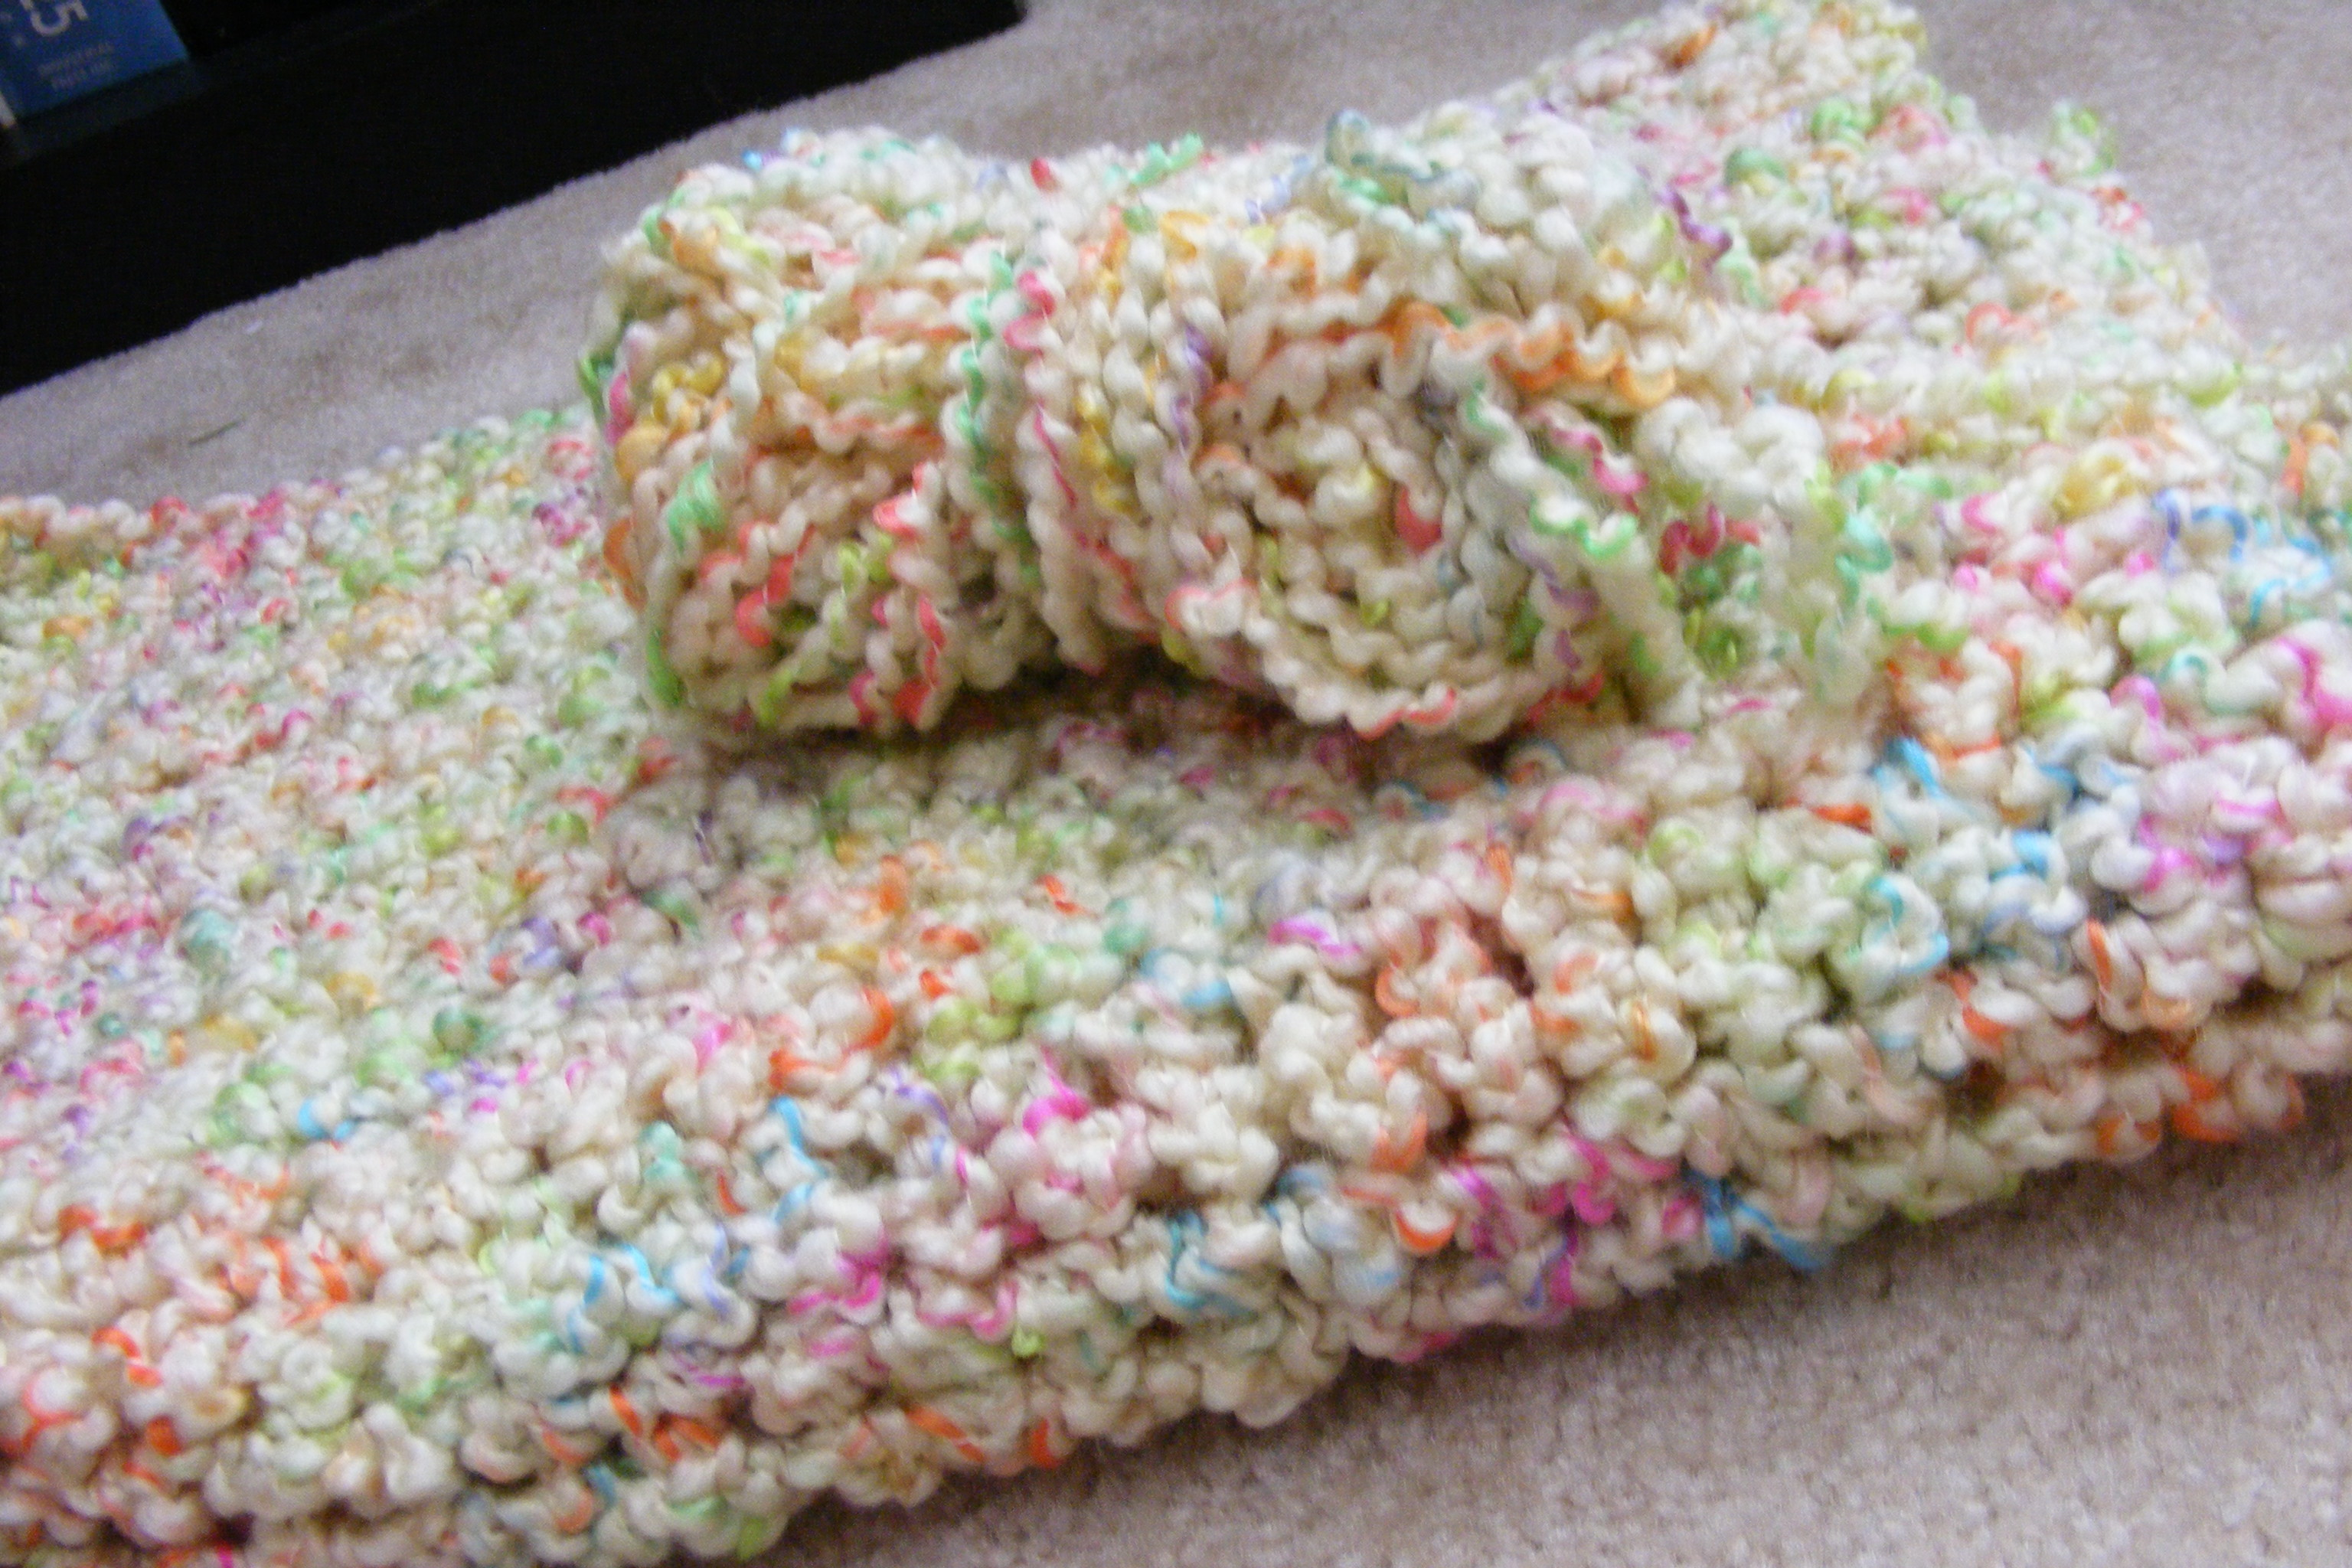 Crocheting A Baby Blanket : Crochet Basket & Two Baby Blankets